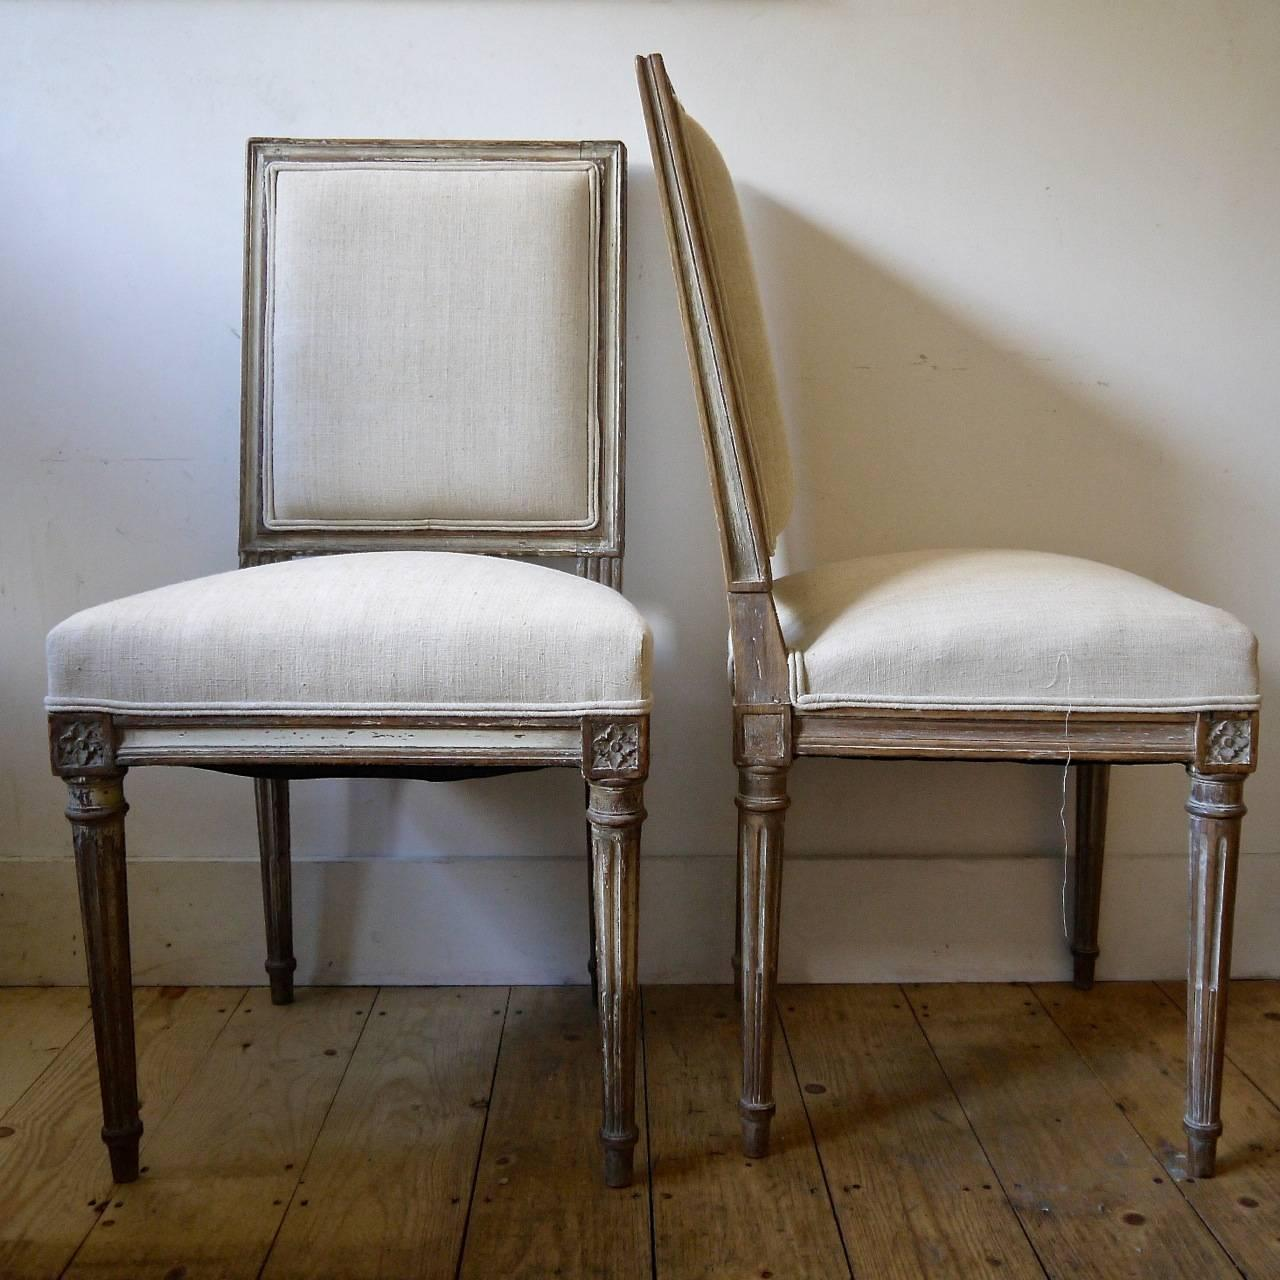 19th century painted dining room chairs upholstered in antique linen